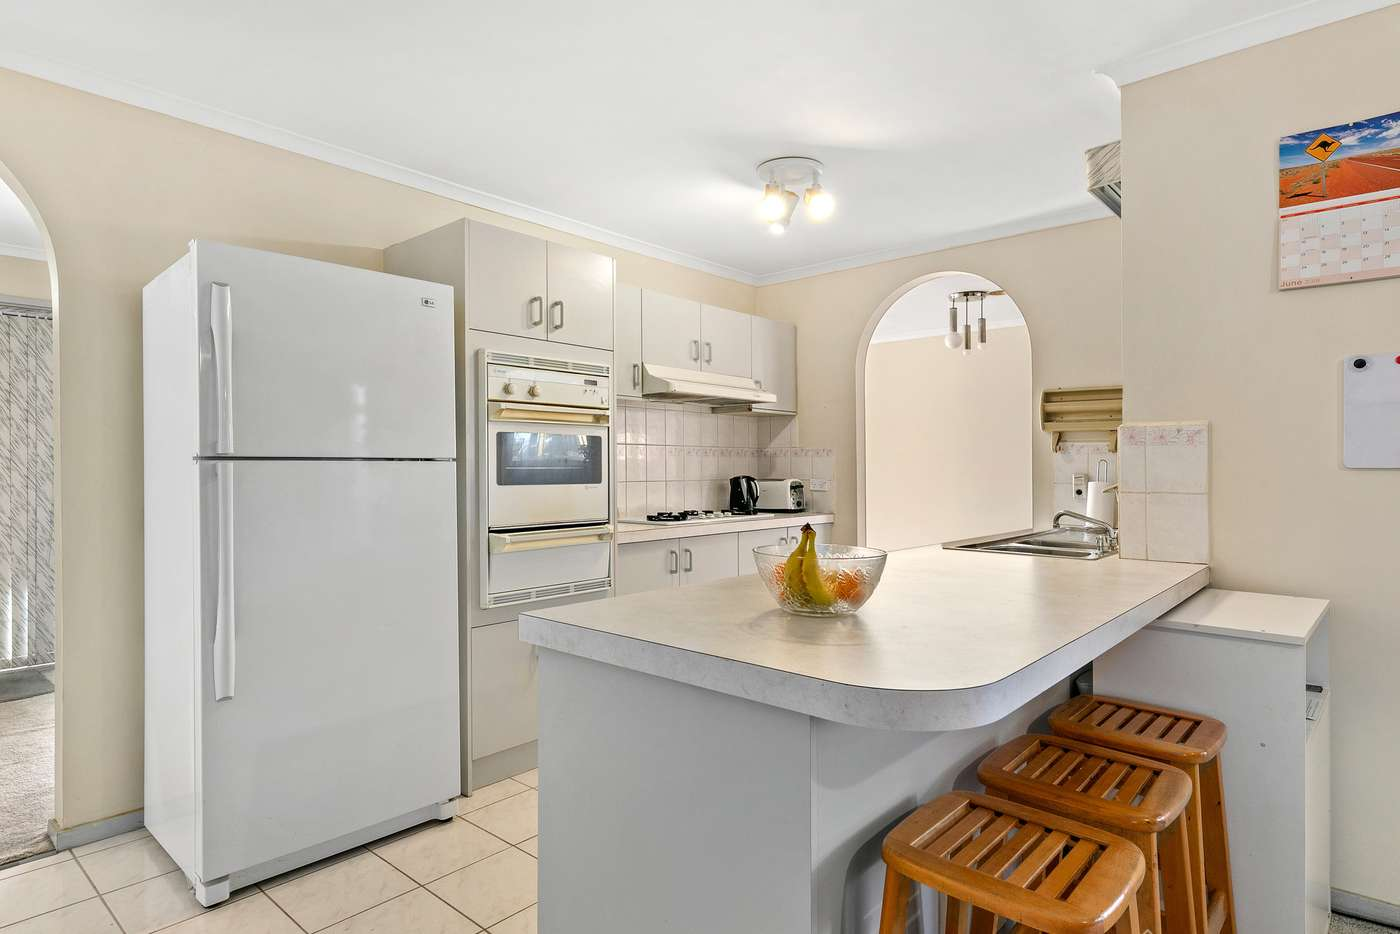 Fifth view of Homely house listing, 67 Nettle Drive, Hallam VIC 3803